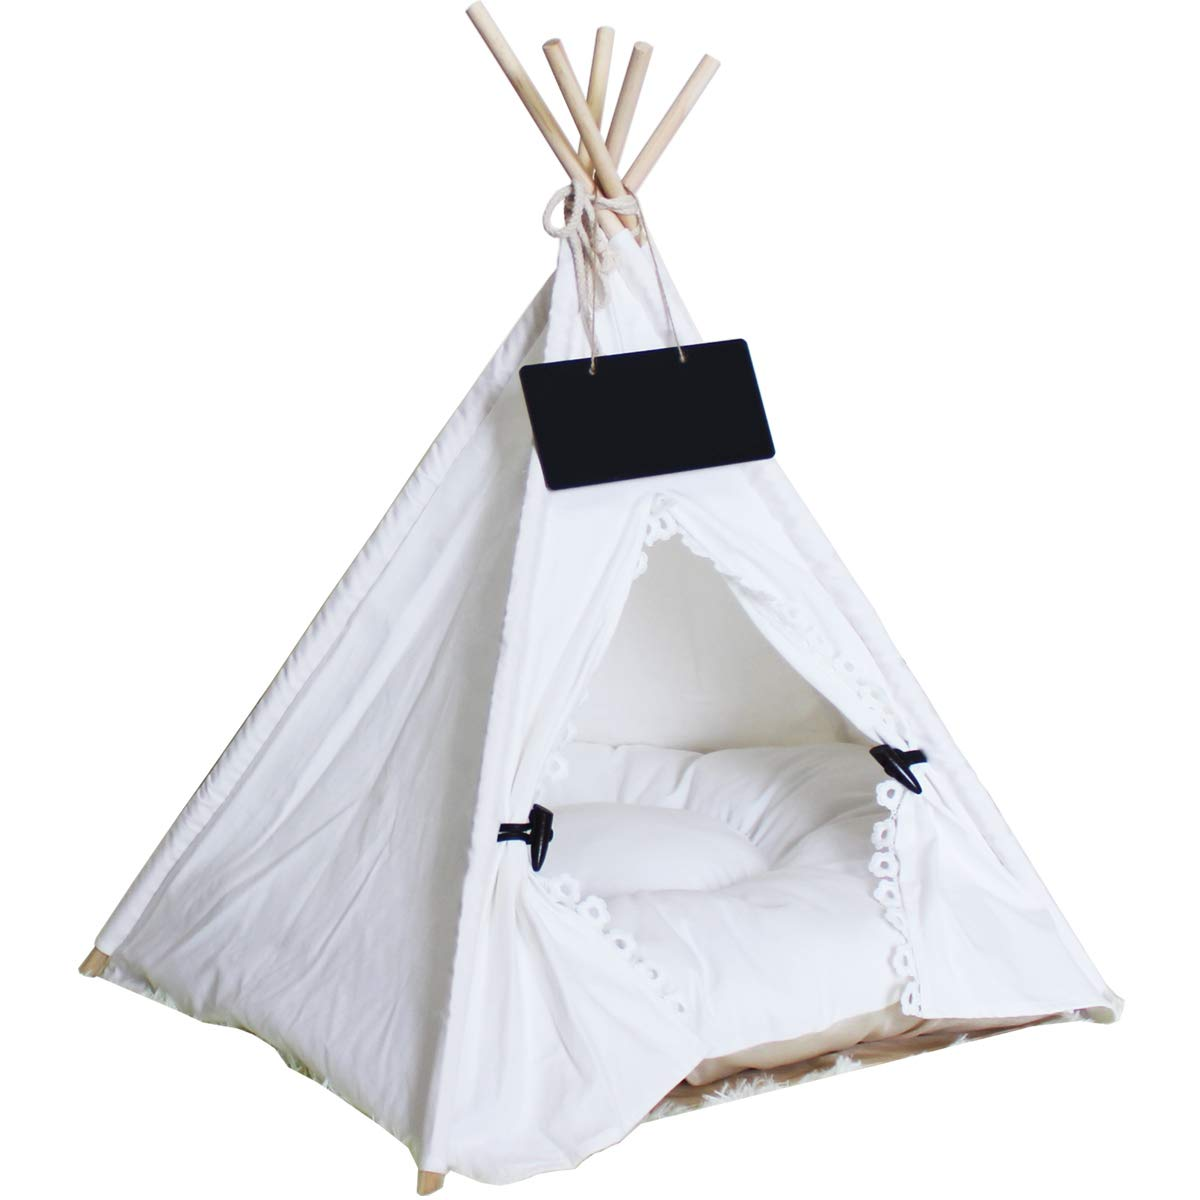 Penck Pet Teepee Dog & Cat Bed - Portable Dog Tents & Pet Houses with Thick Cushion & Blackboard, 24 Inch Tall, for Pets Up to 15lbs